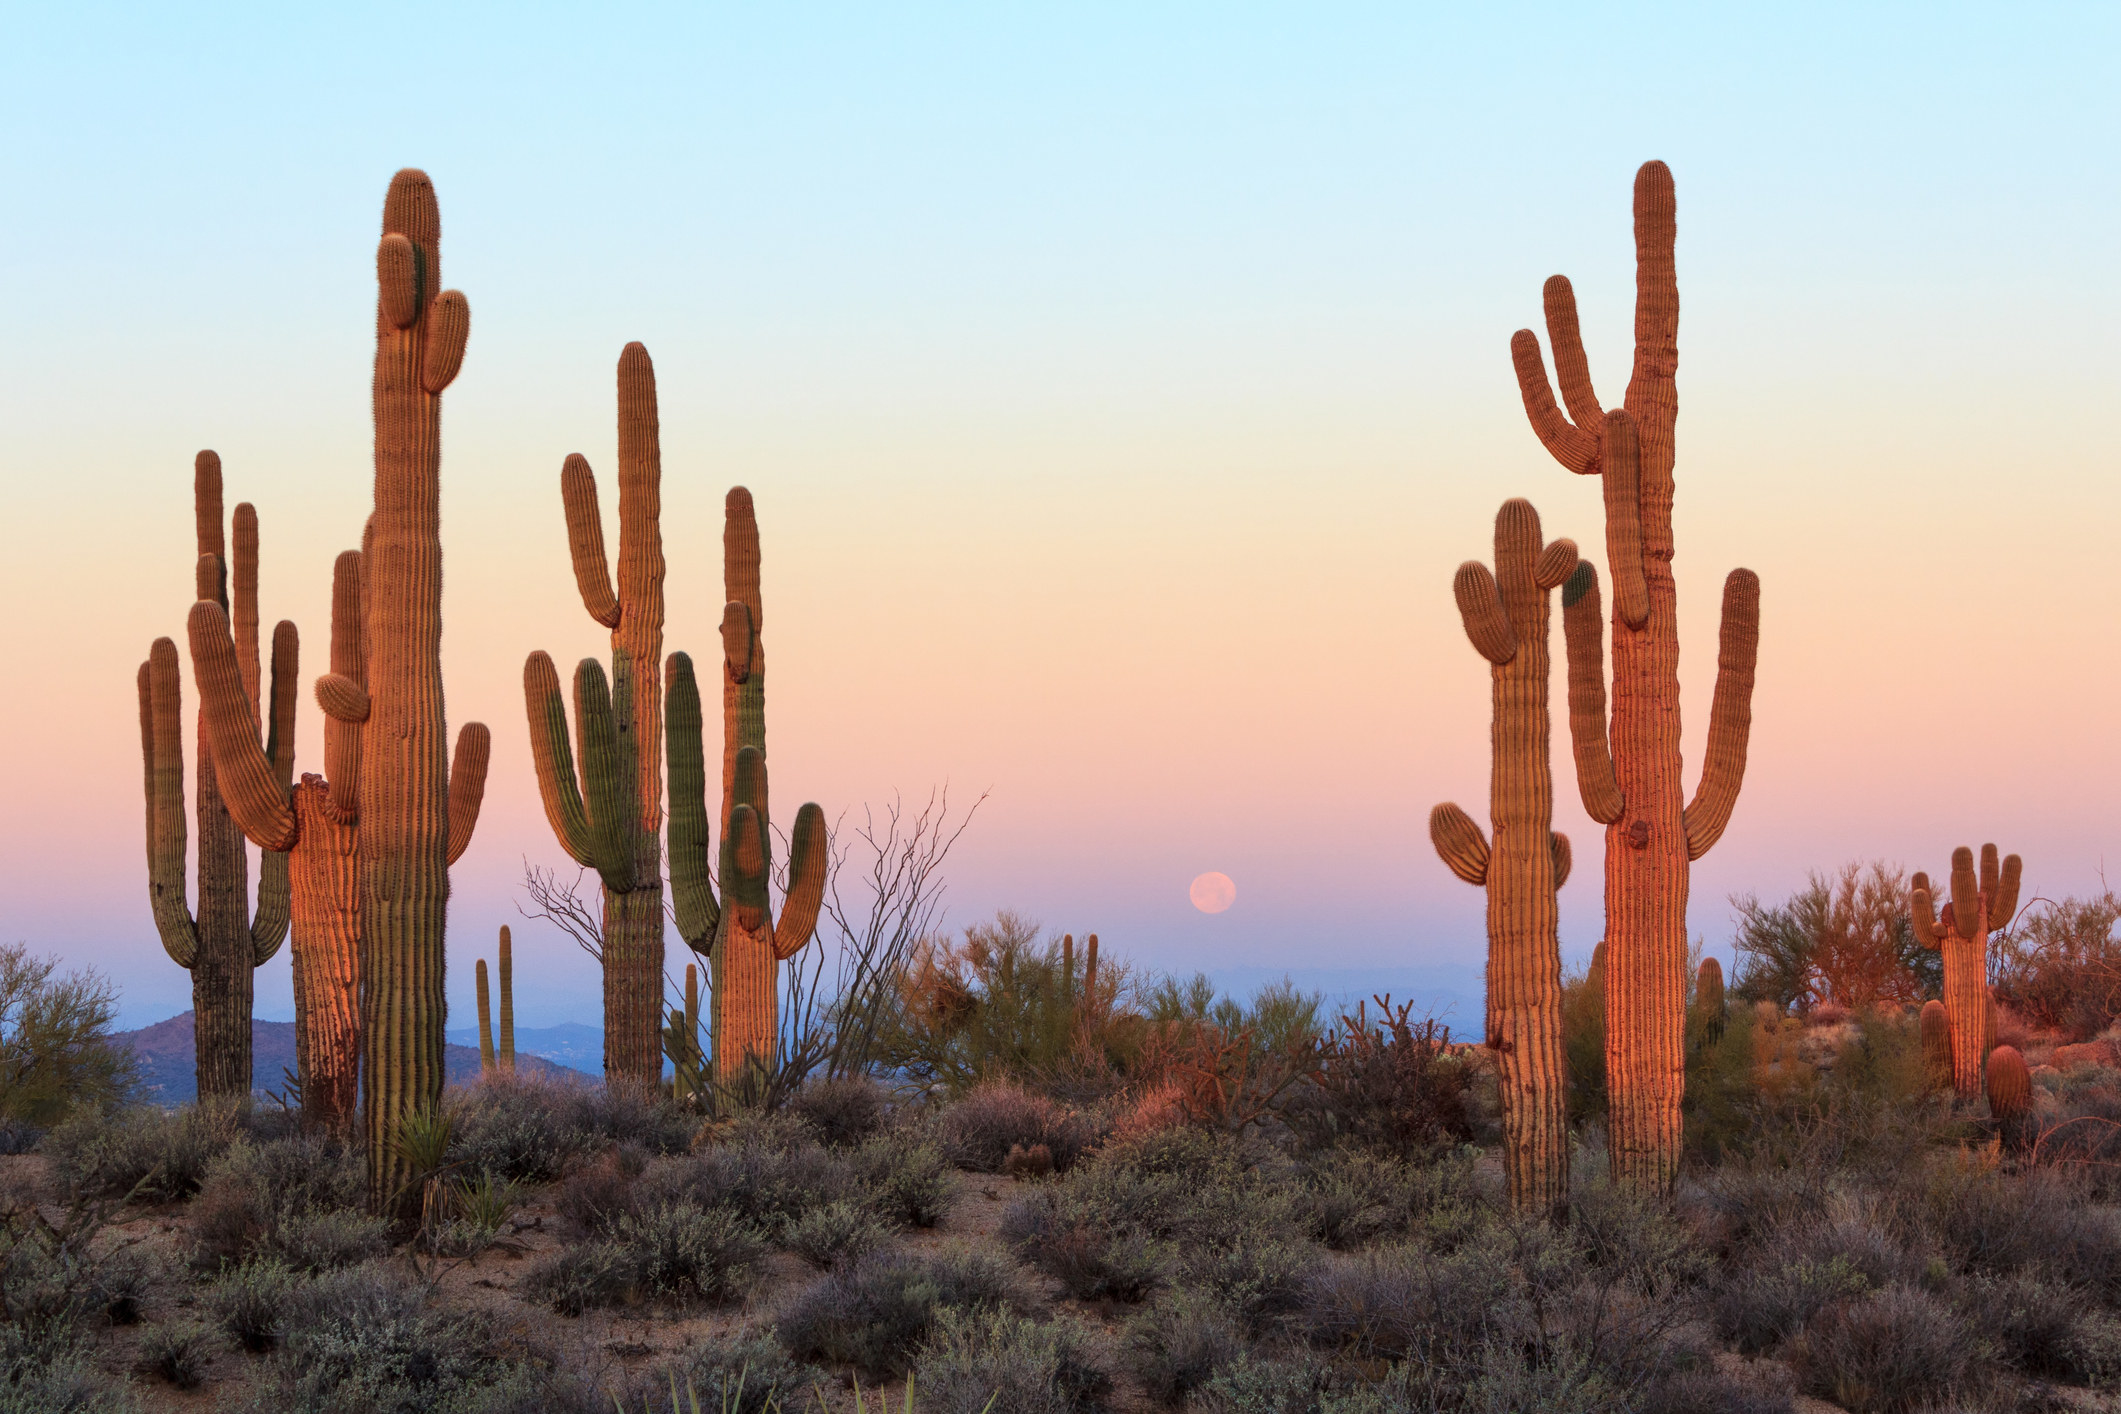 tall cacti in a scrubby desert field at sunset